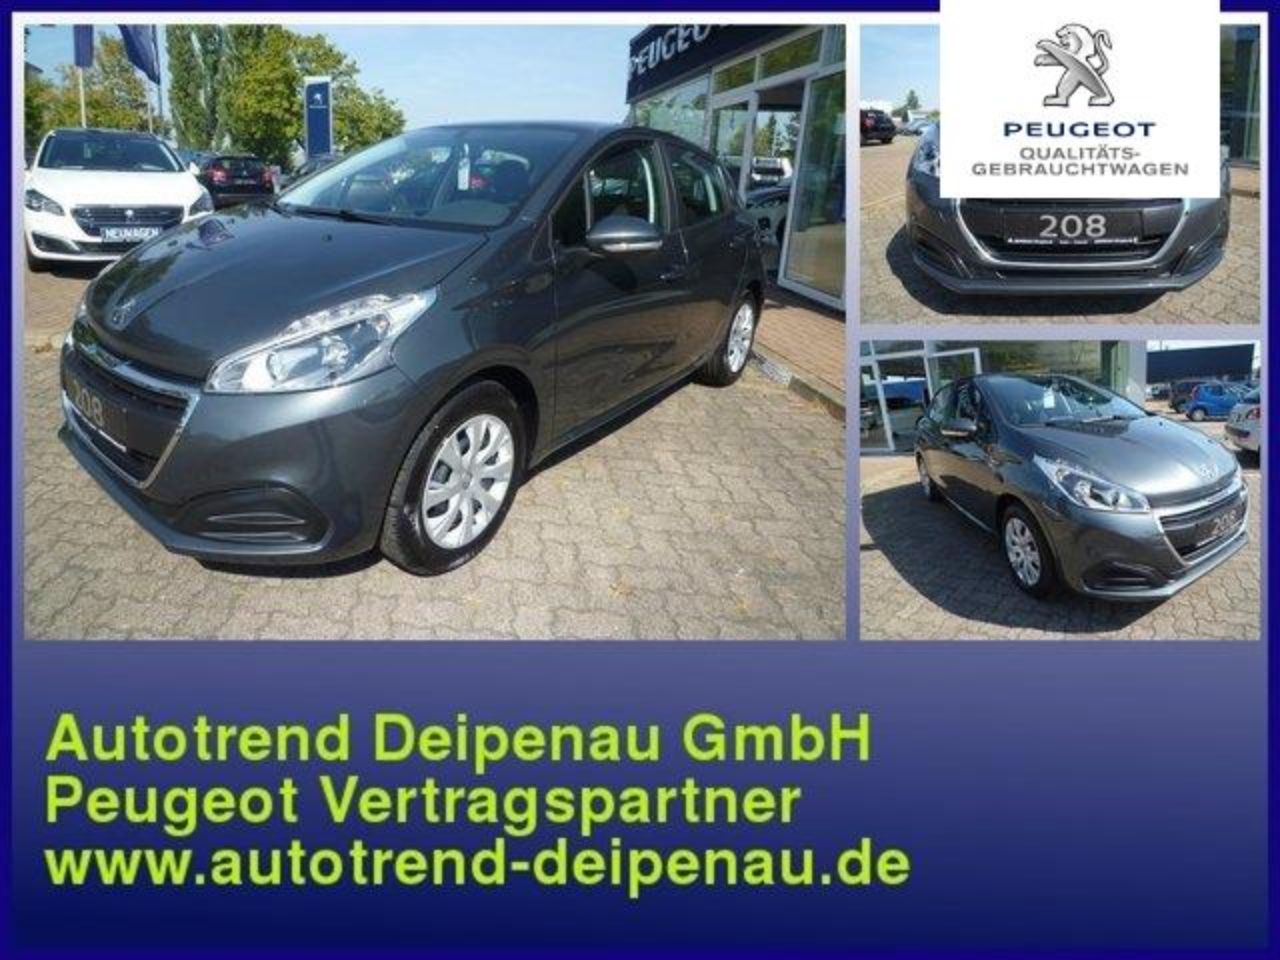 Peugeot 208 Active Pure Tech 82 5-Trg